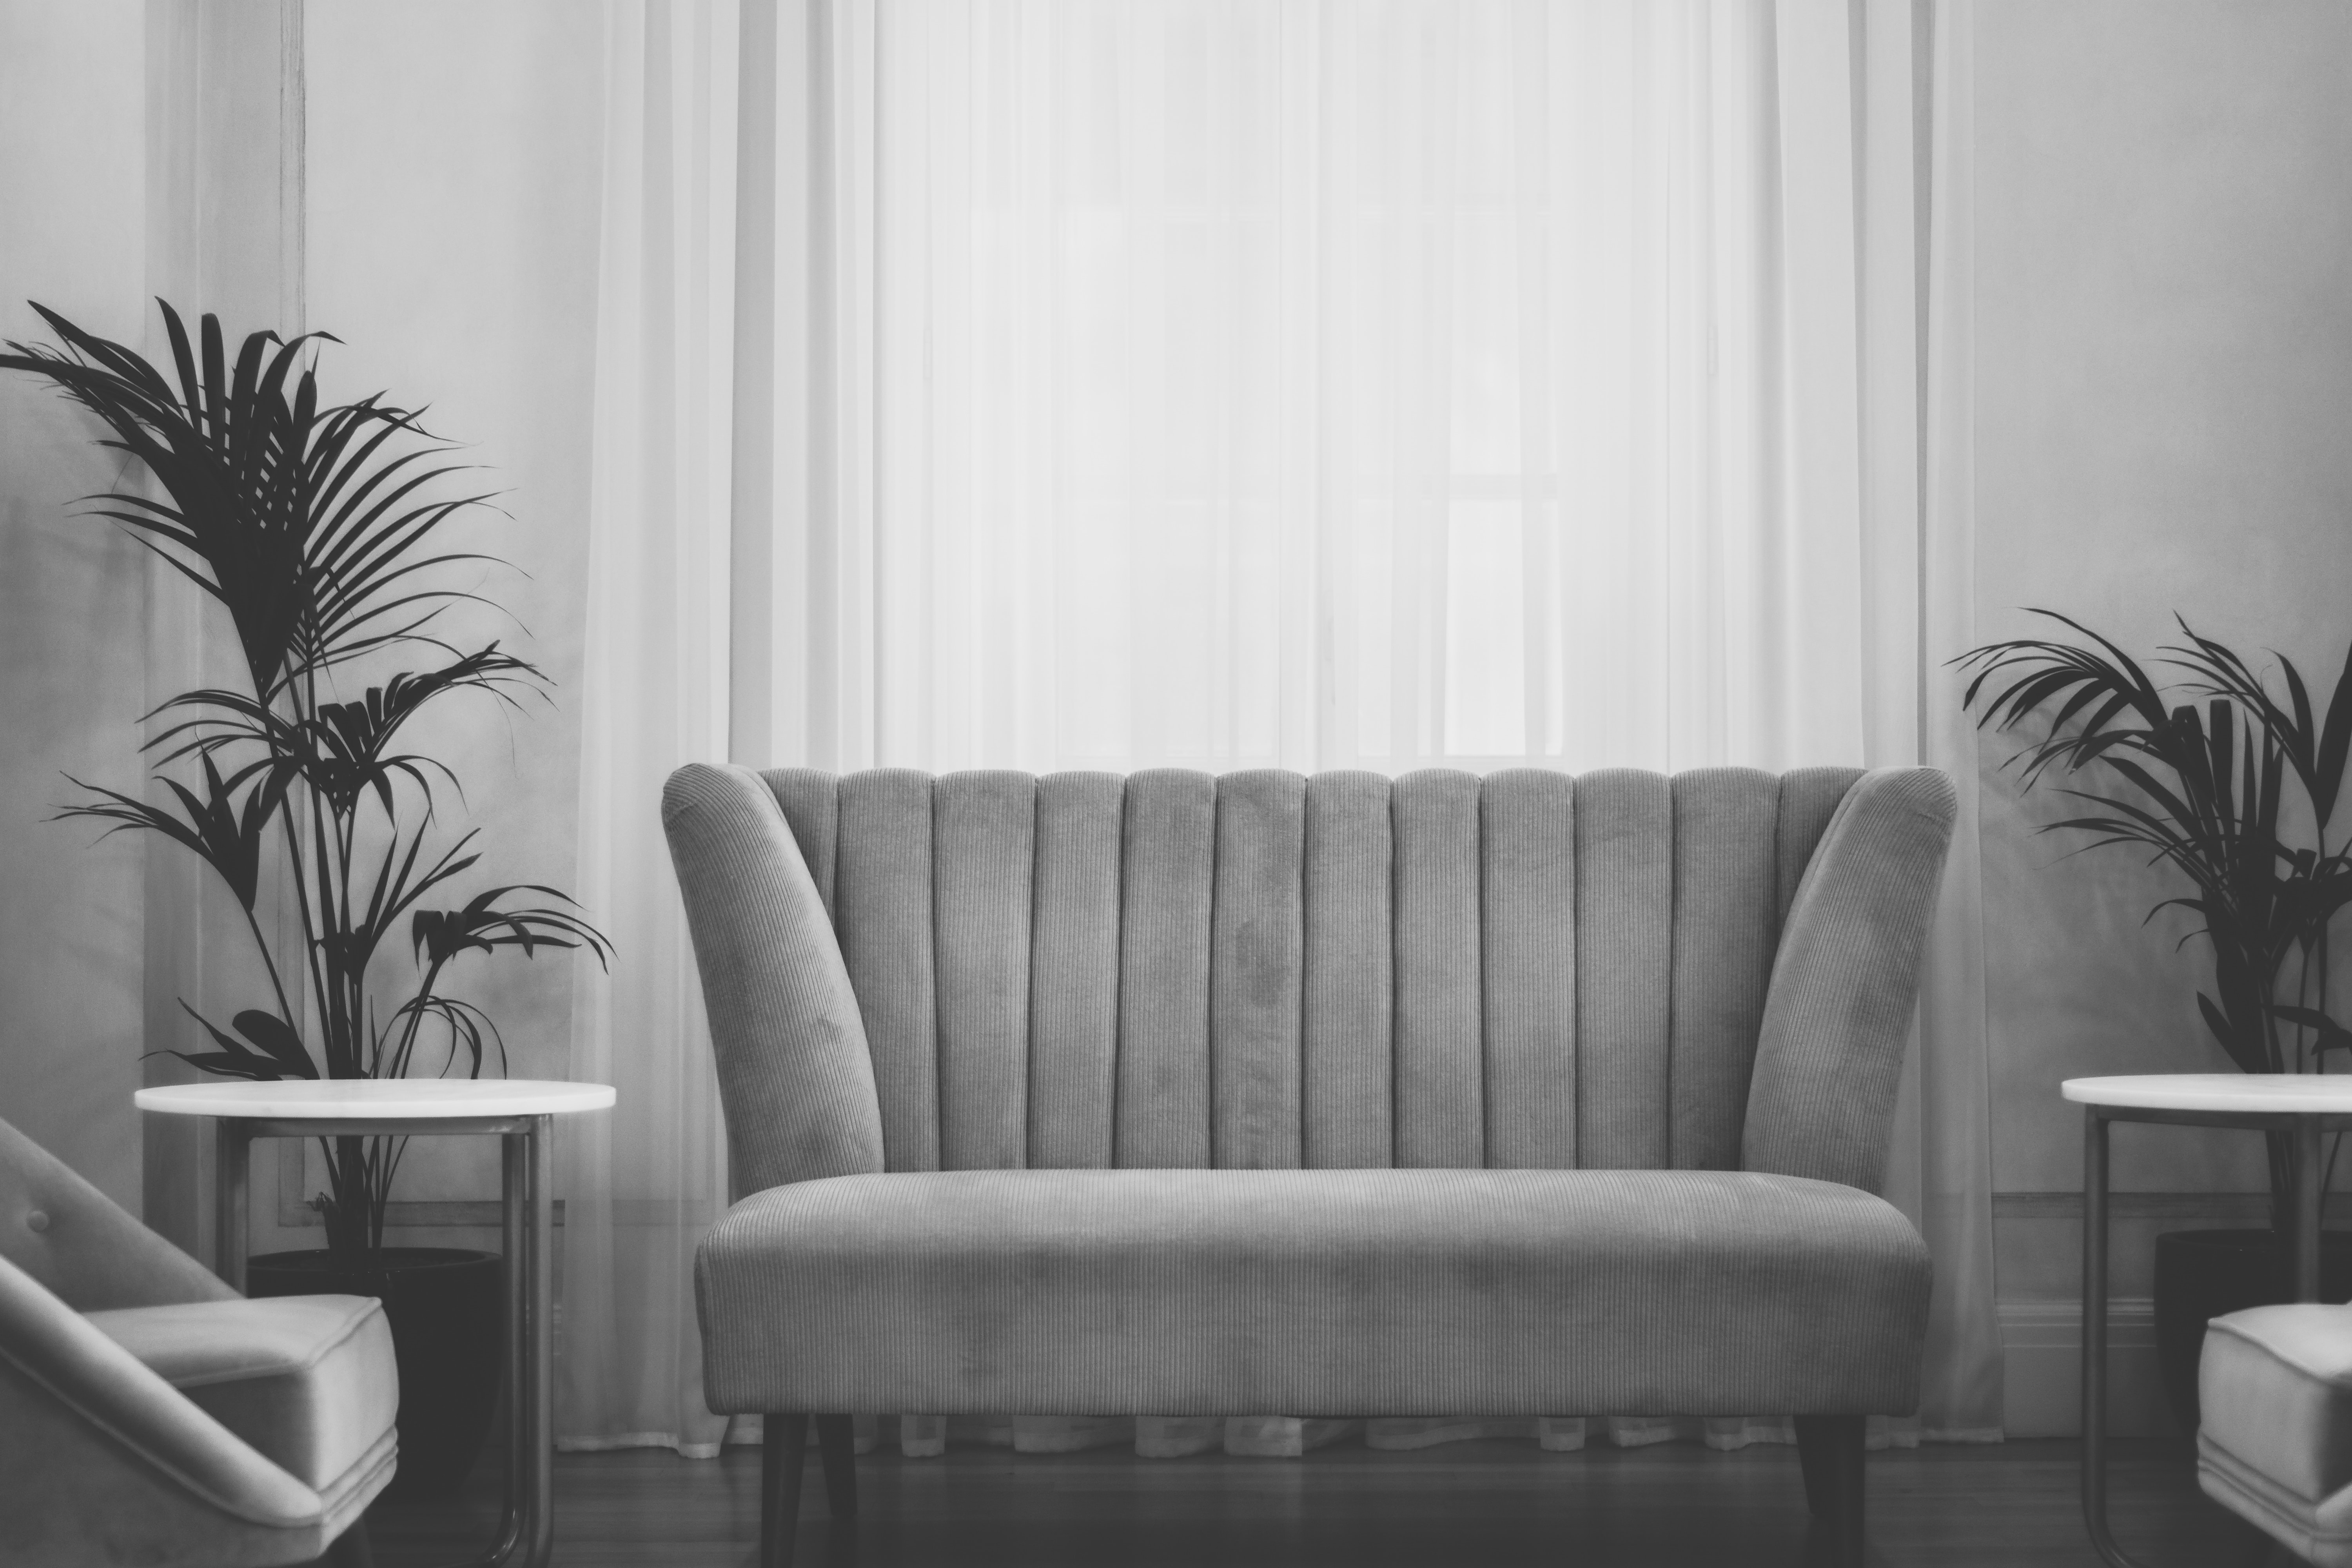 Modern living room with a couch and two tables and plants and curtains in the background seen through a gray filter